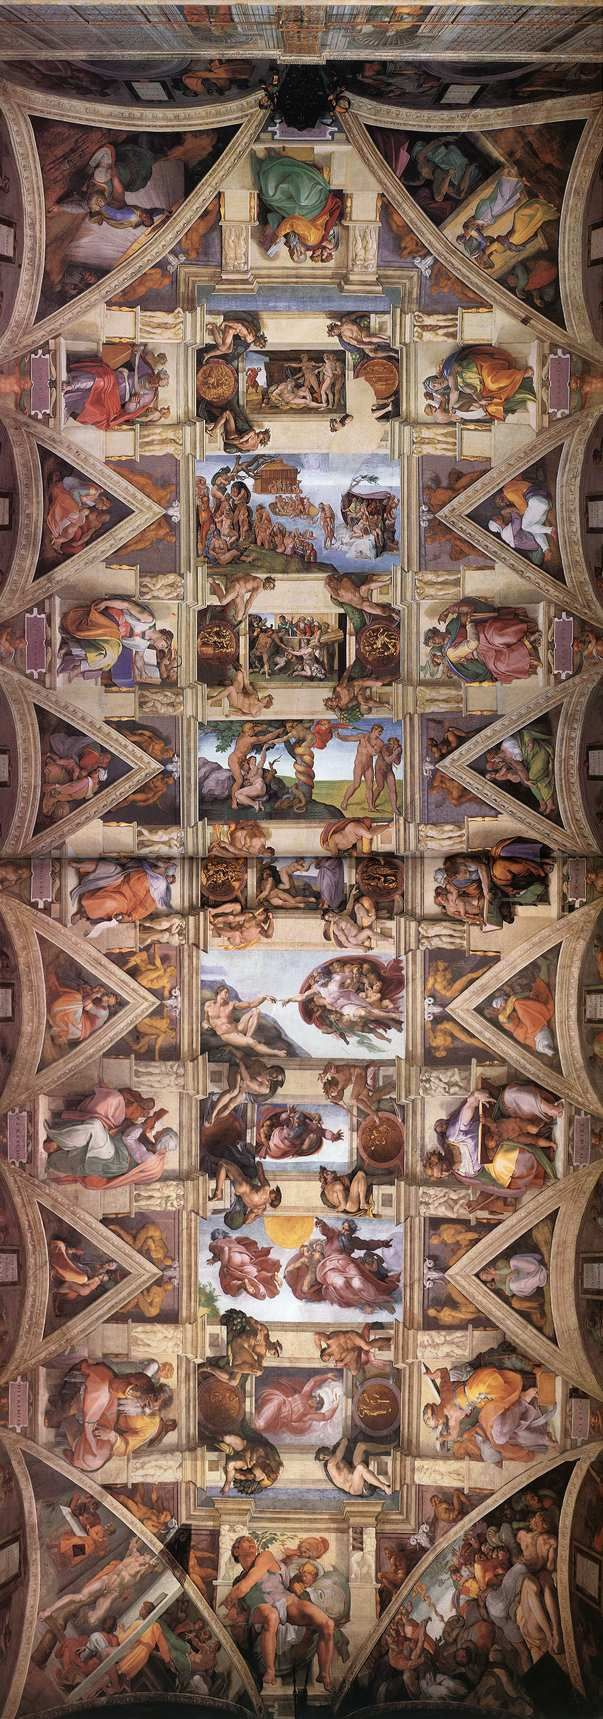 MICHELANGELO: Sistine Chapel Ceiling, fresco, 128' x 45', Vatican, Rome. 1508-12.  The nine central panels show the Stories of Genesis, from the Creation to the Fall of man, to the Flood and the subsequent rebirth of mankind with the family of Noah.